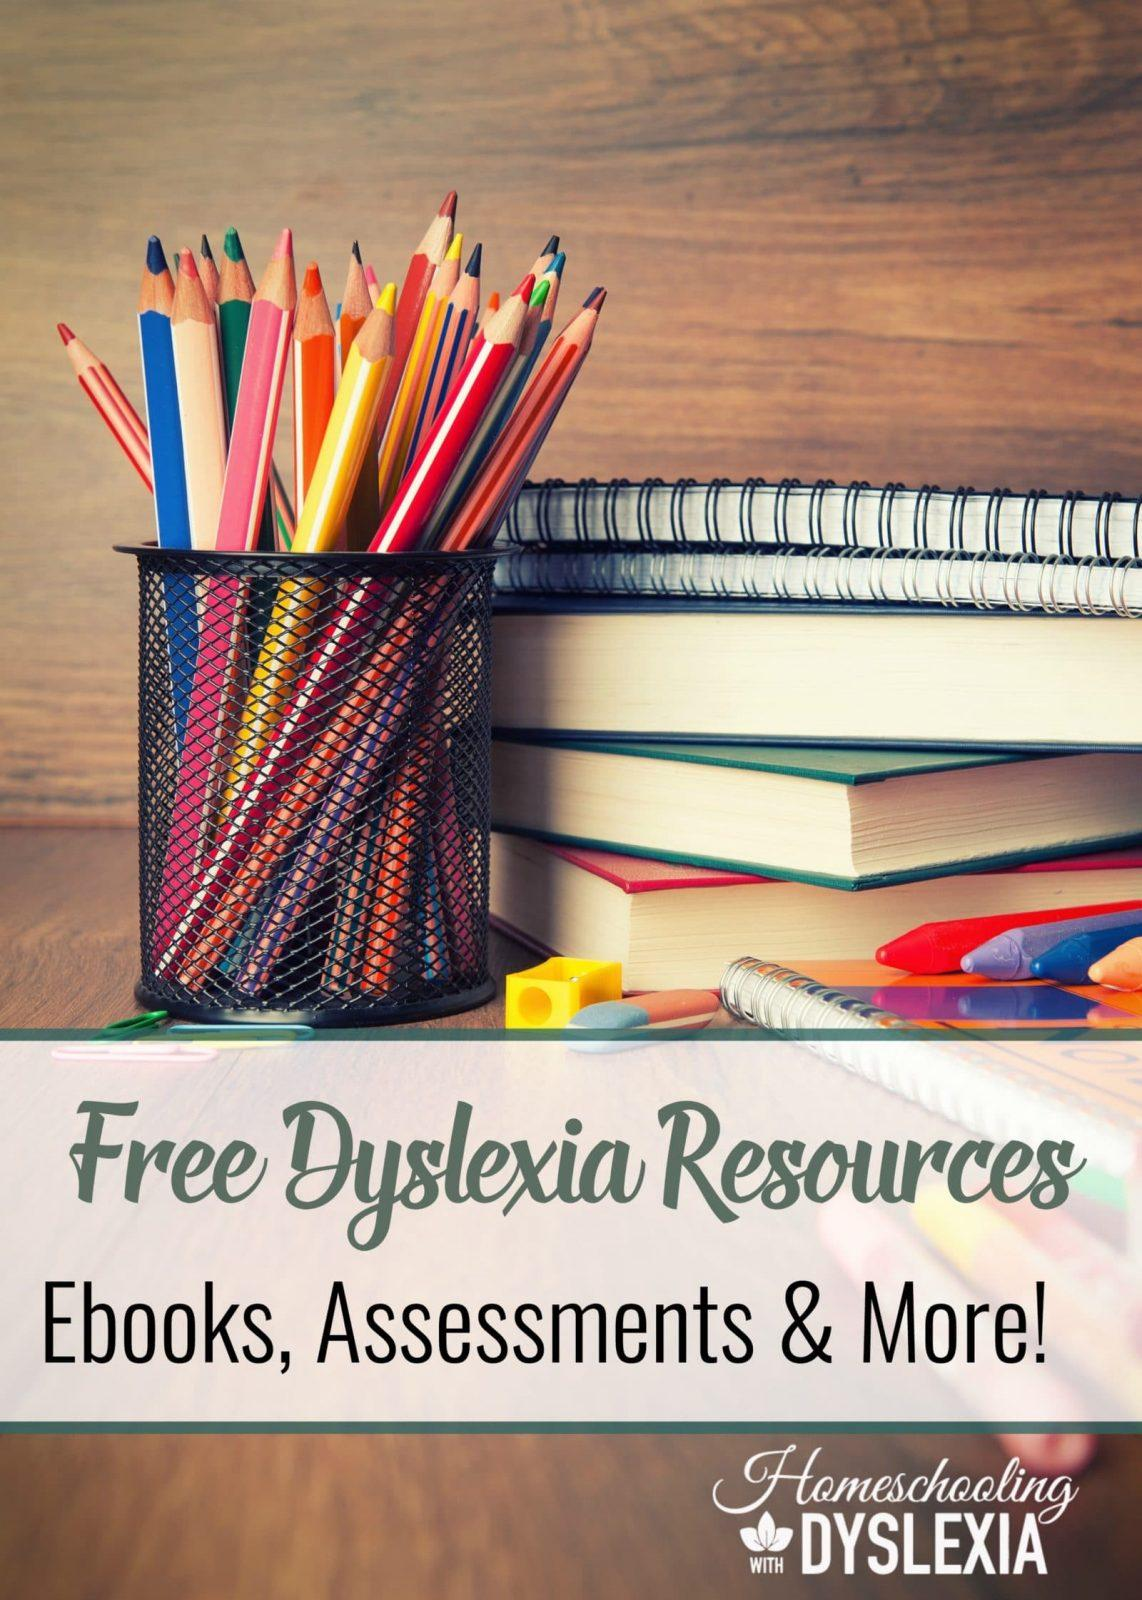 hight resolution of Free Dyslexia Resources   Homeschooling with Dyslexia